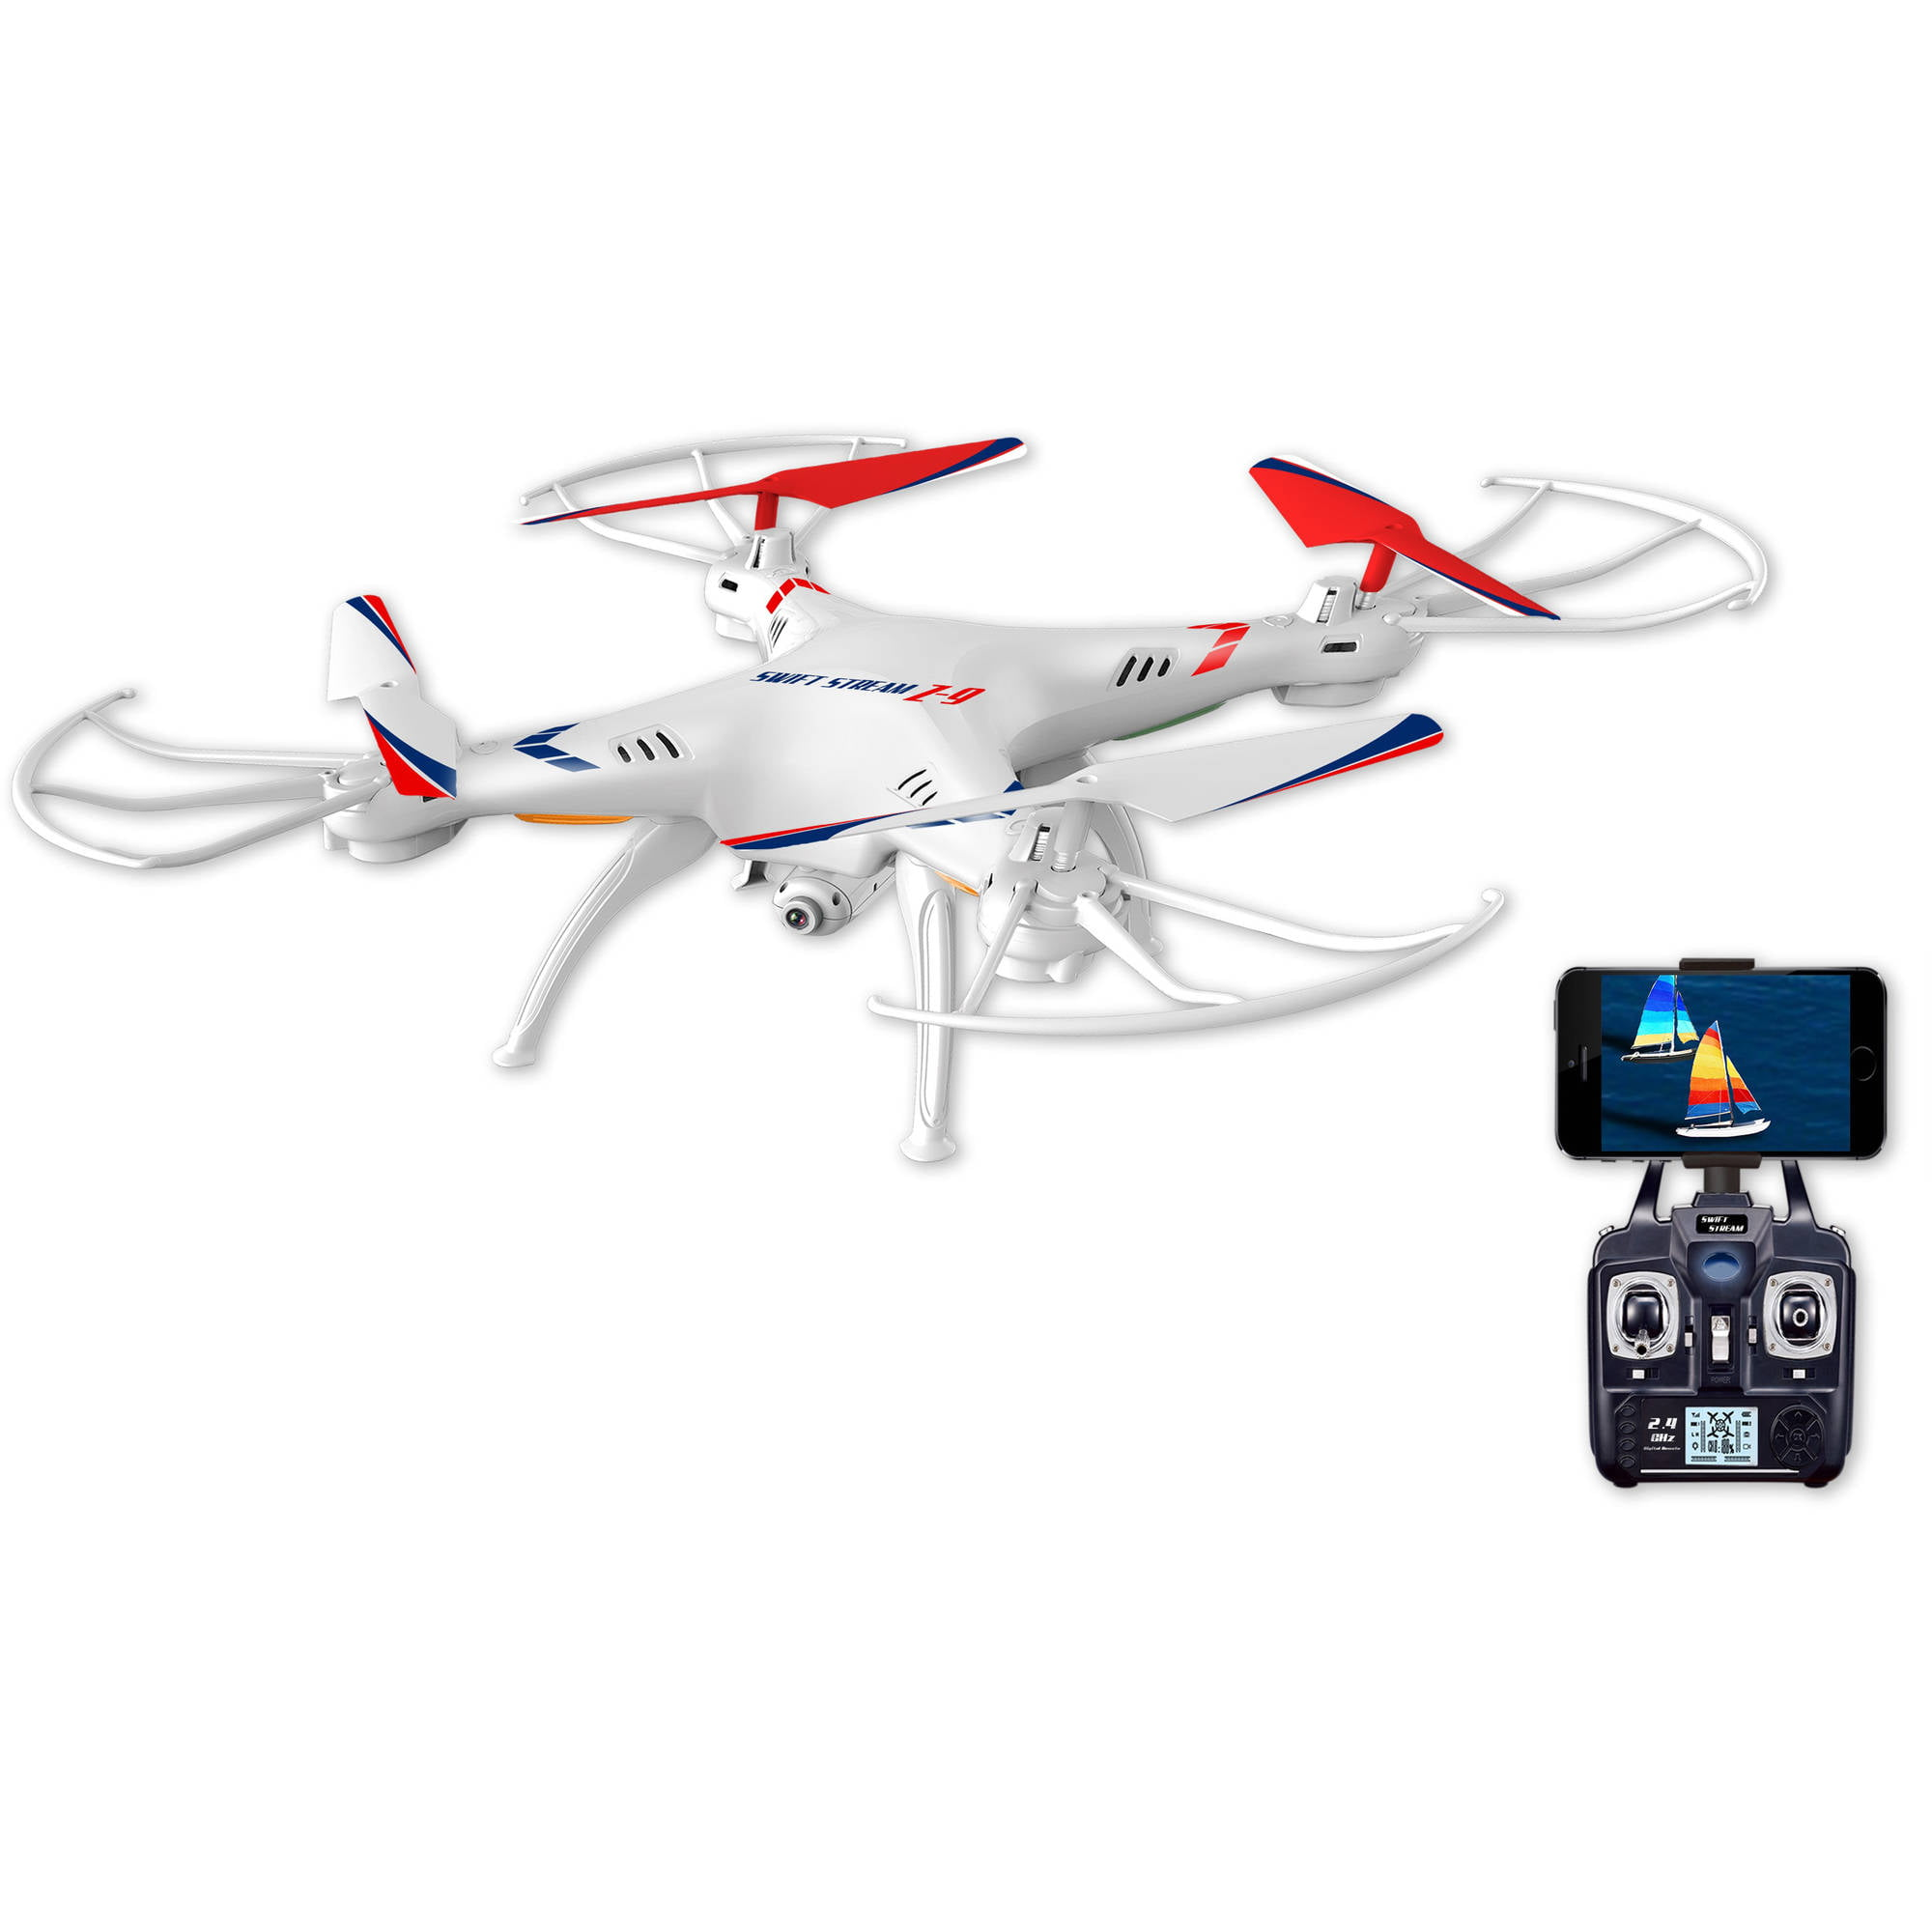 "Swift Stream Z-9 Remote Control 12"" Camera Drone, White by Abrim Enterprises, Inc."